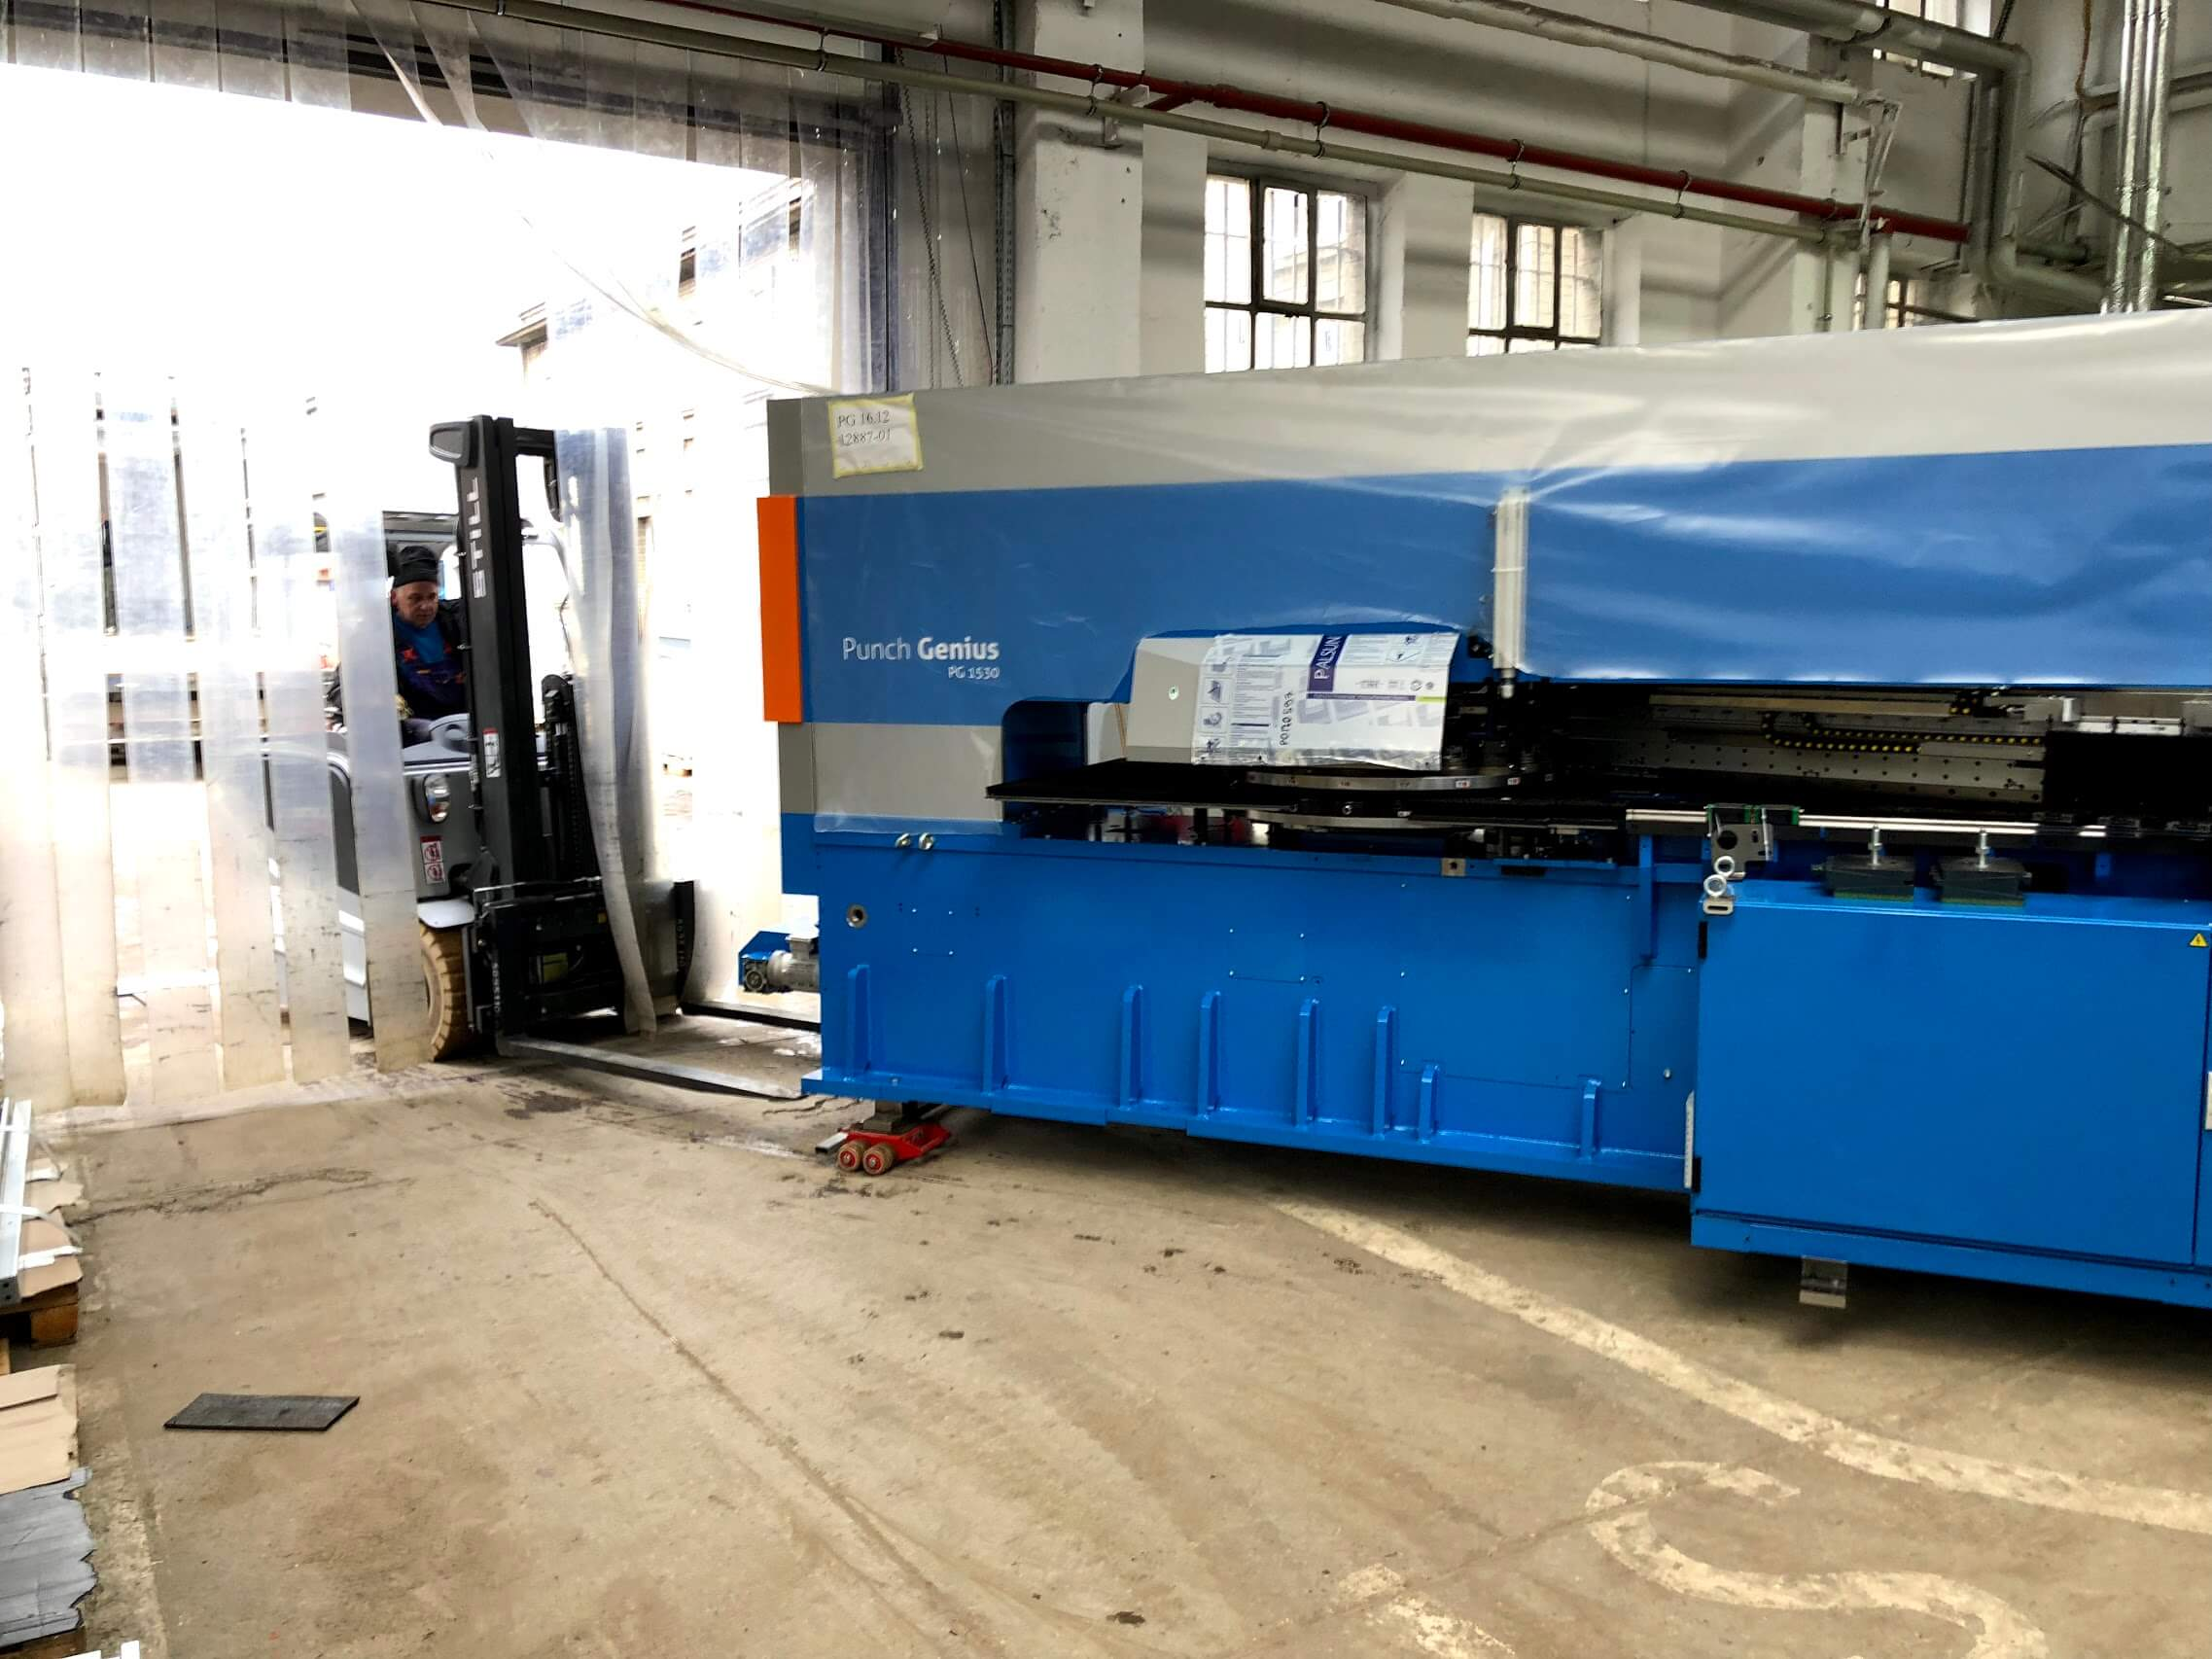 GDYNIA Relocation of punching machines